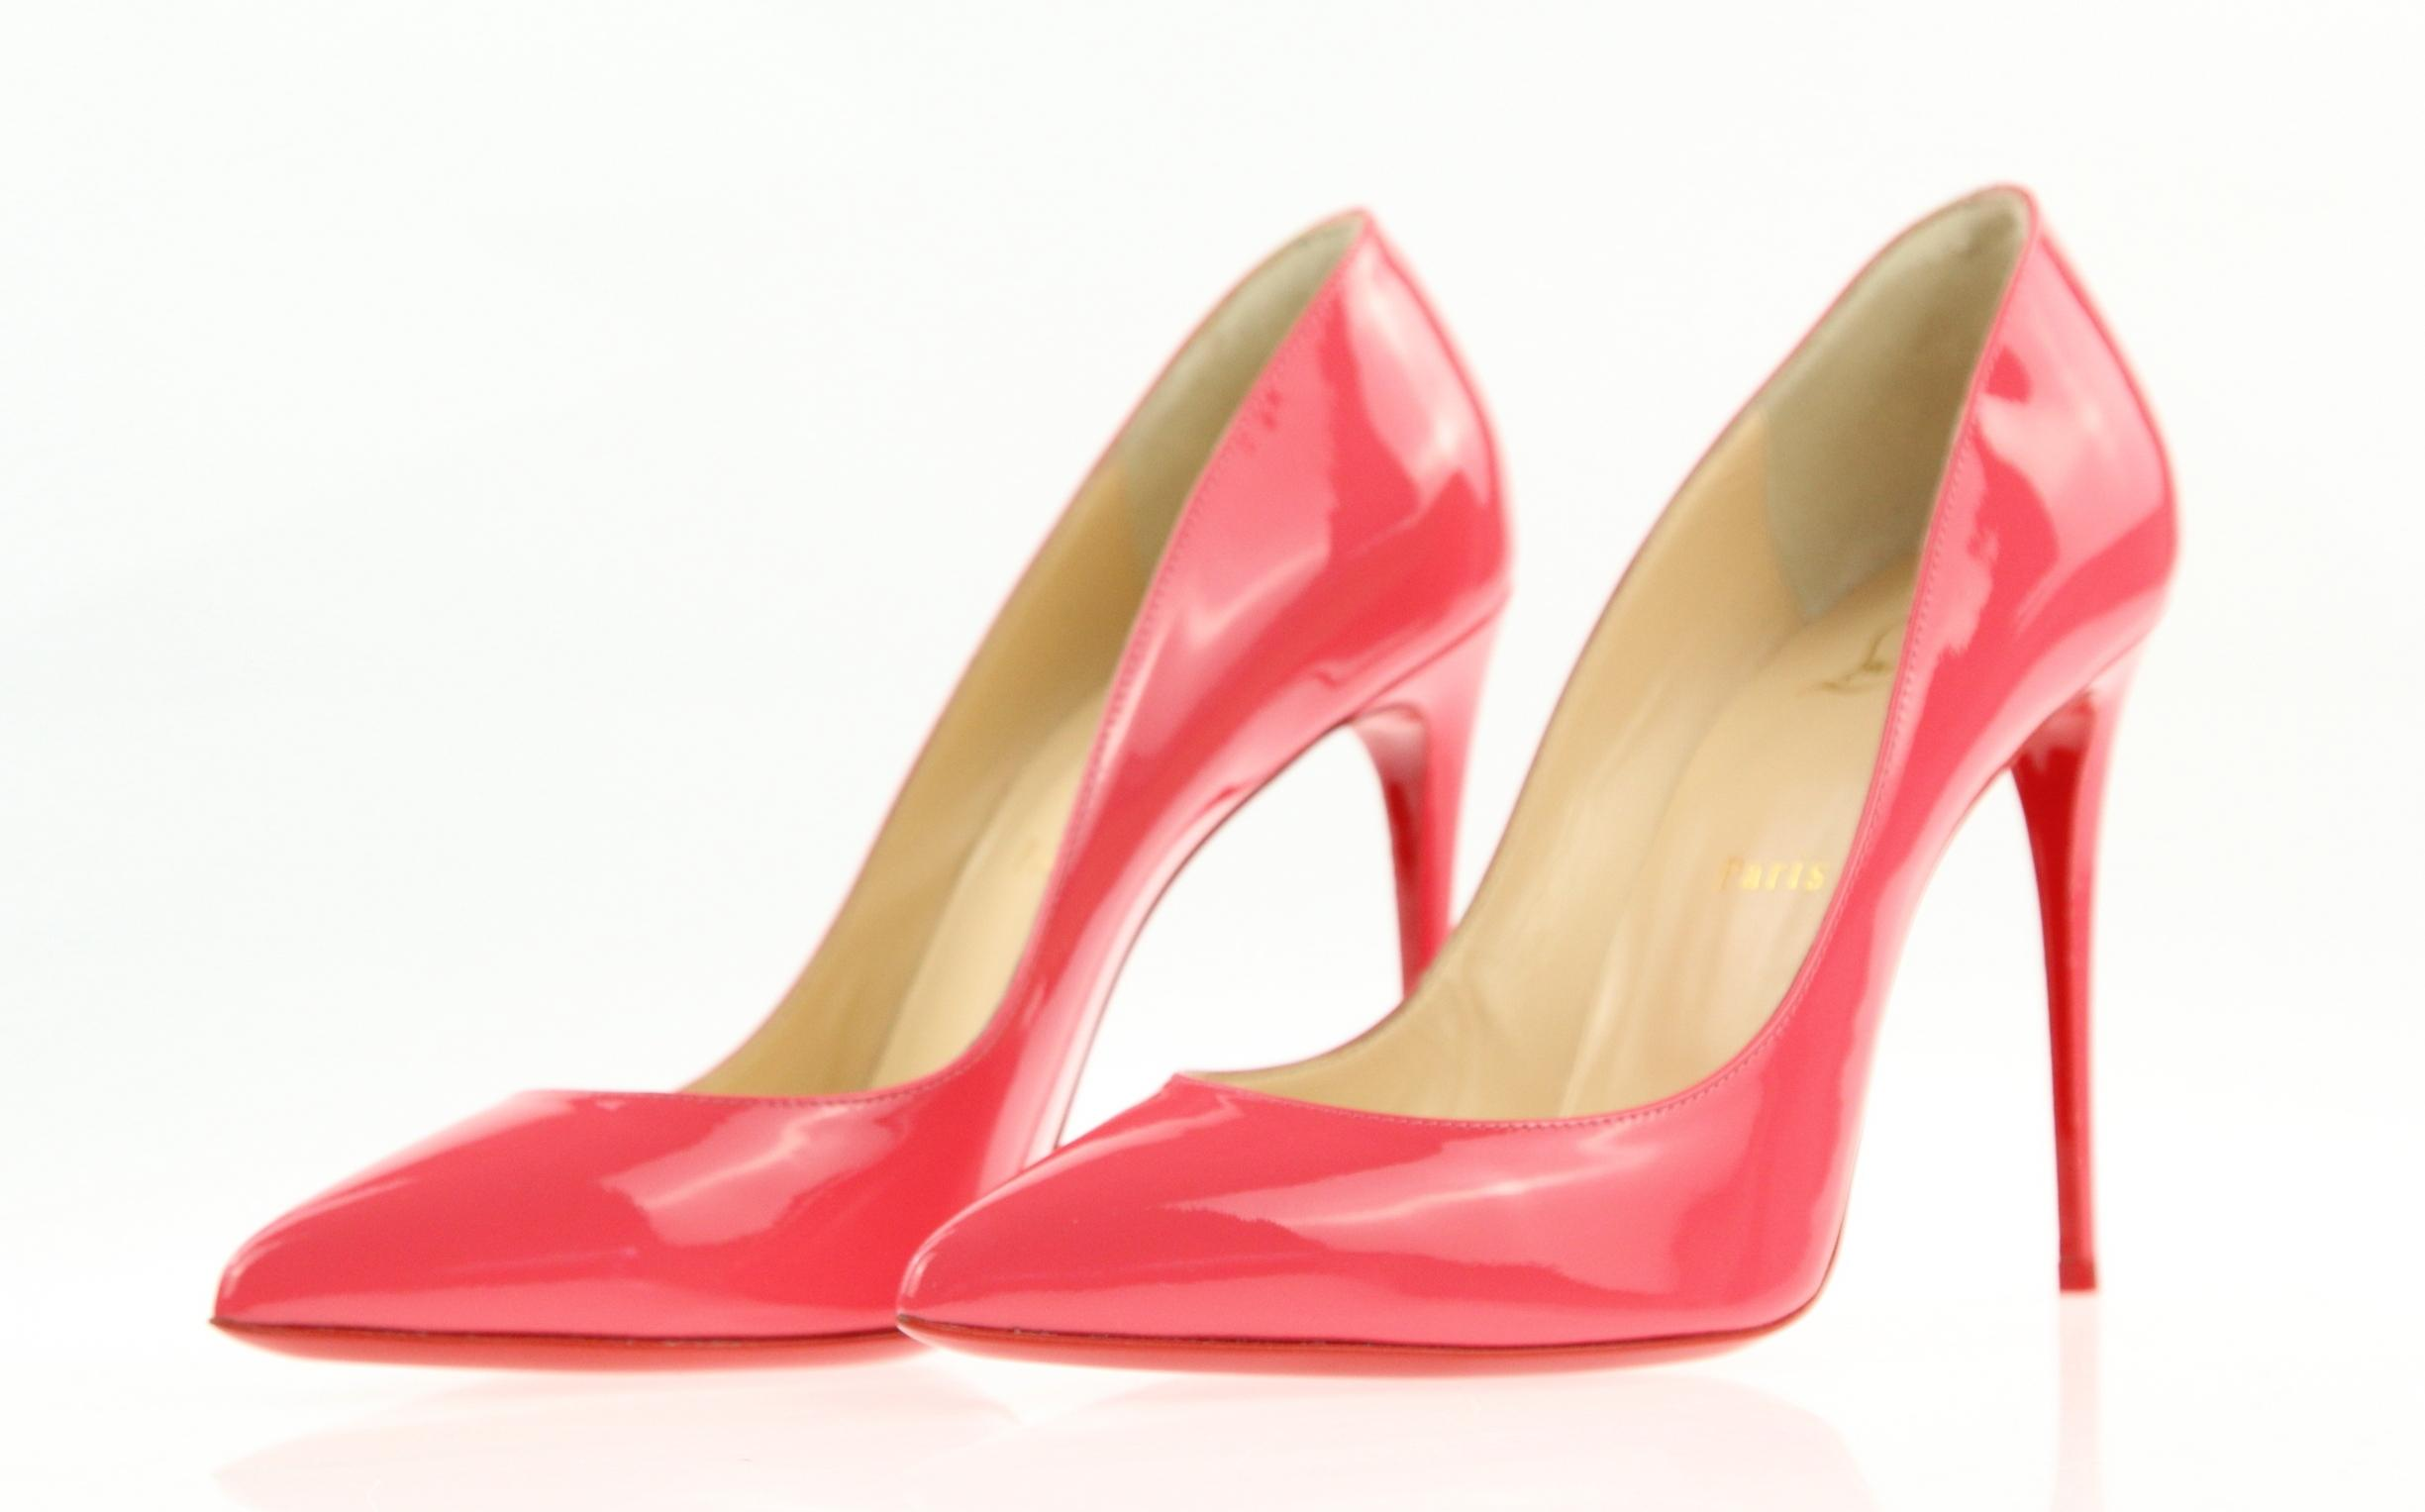 6137ee7ad86 Christian Louboutin Pink Pigalle Follies 100 Patent Pumps Pumps ...